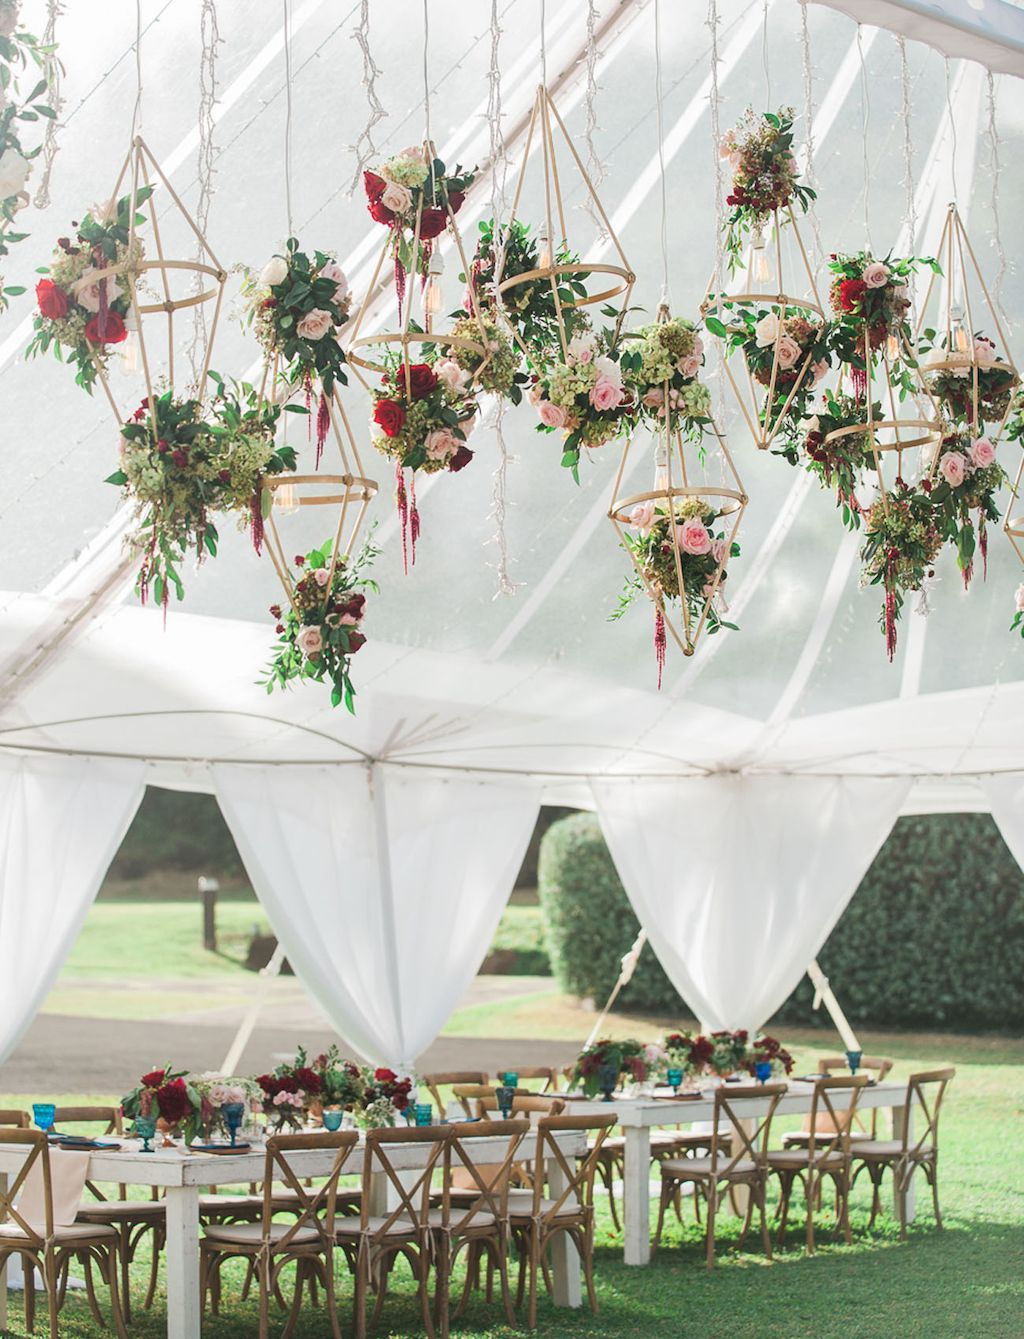 90 Greenery Wedding Decor Ideas | Floral wedding, Theme ideas and ...